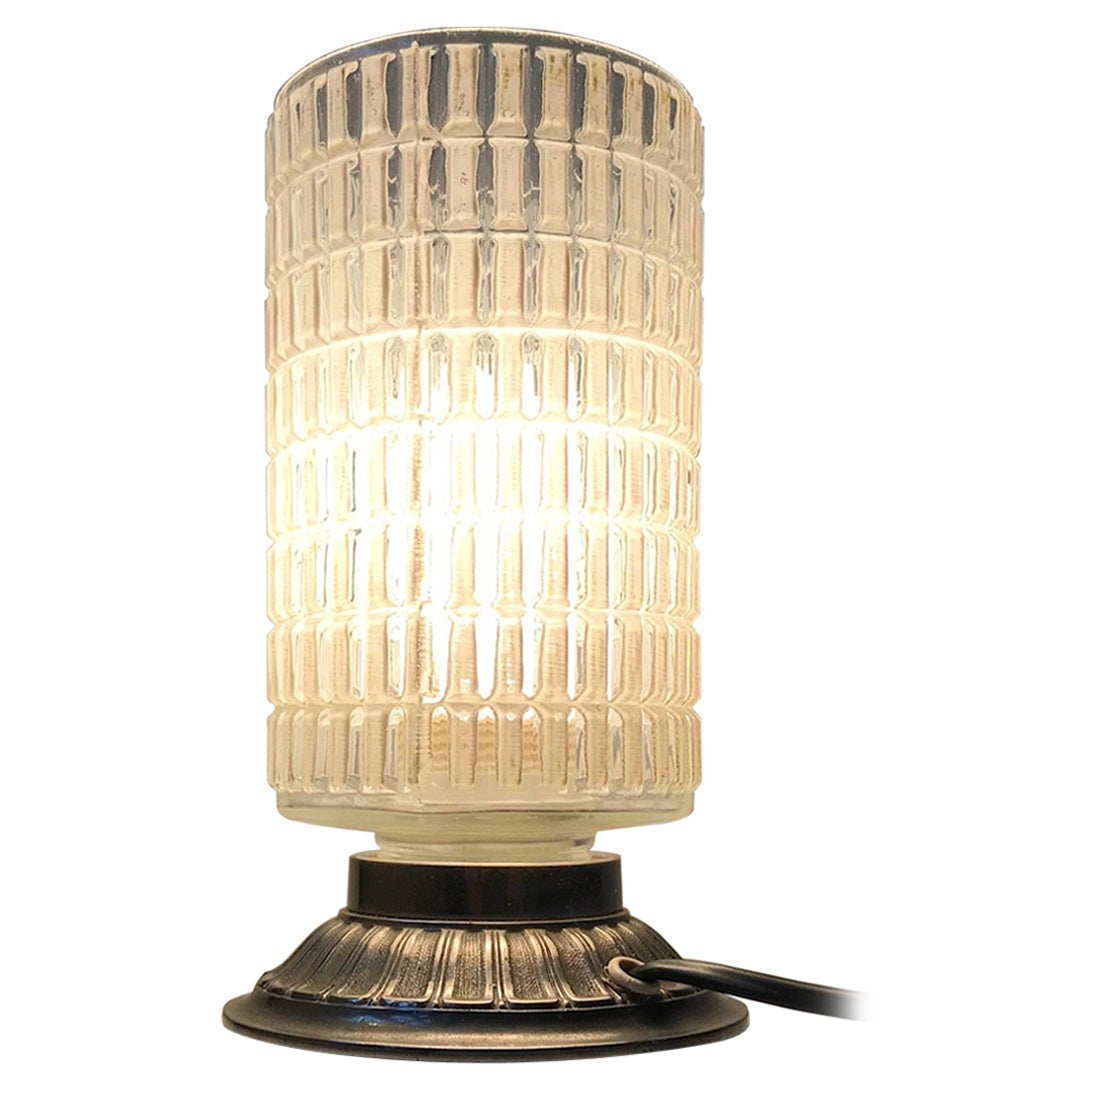 Scandinavian Functionalist Table Lamp in Checkered Glass, 1950s